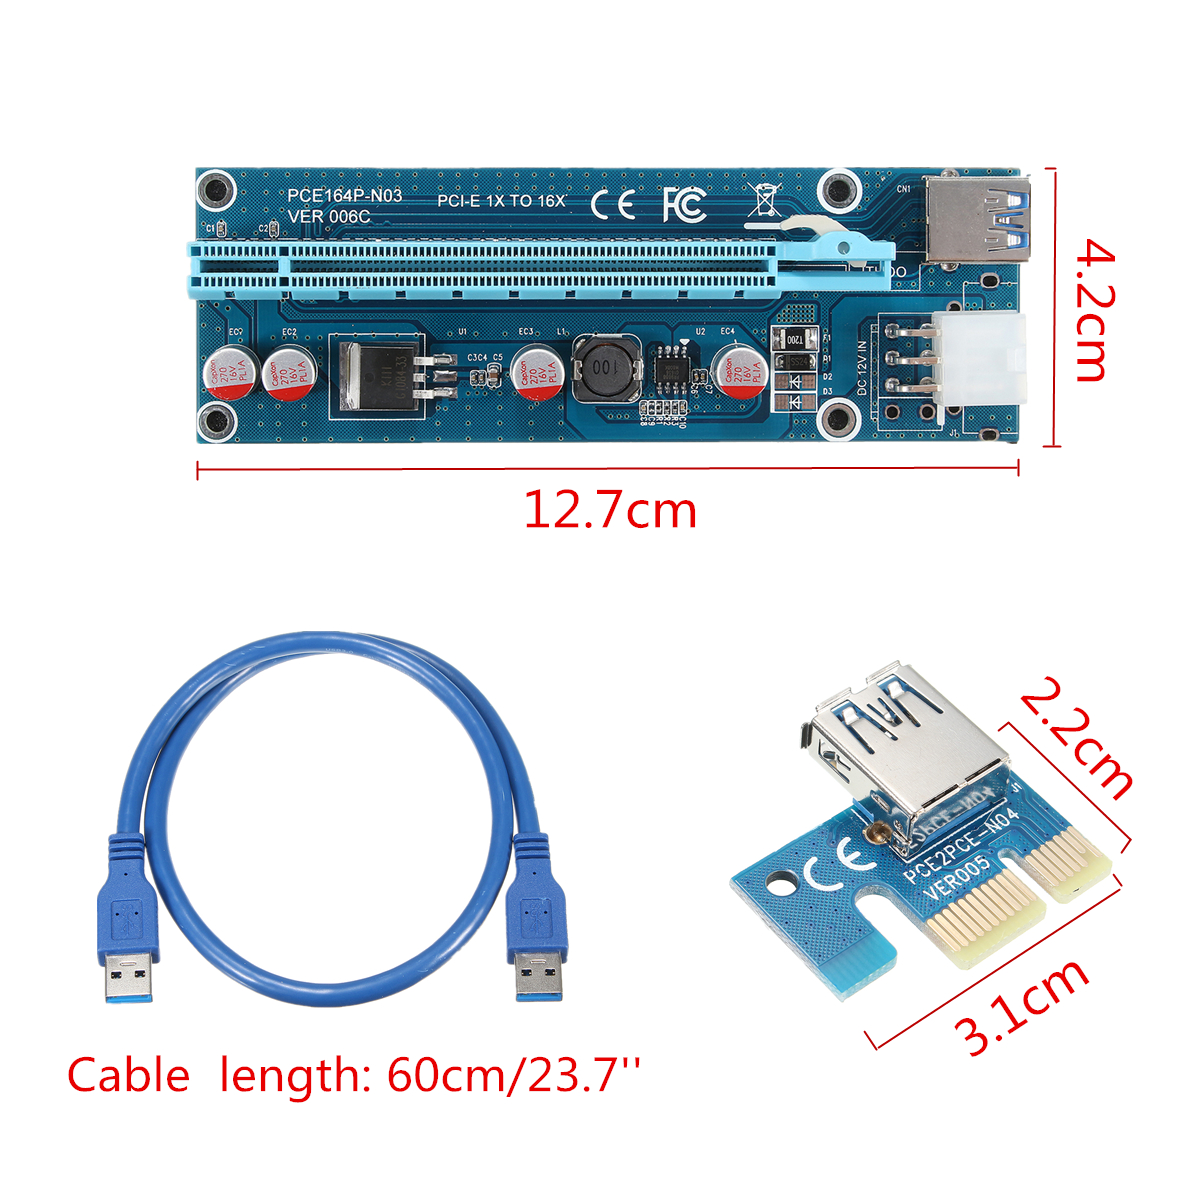 6 Pieces Ethereum Mining ETH with 0.6 m USB 3.0 Extension Cable /& 6PIN SATA Power Cable BEYIMEI PCI-E1X to 16X Riser Card Extension Cable GPU Extender Riser Card